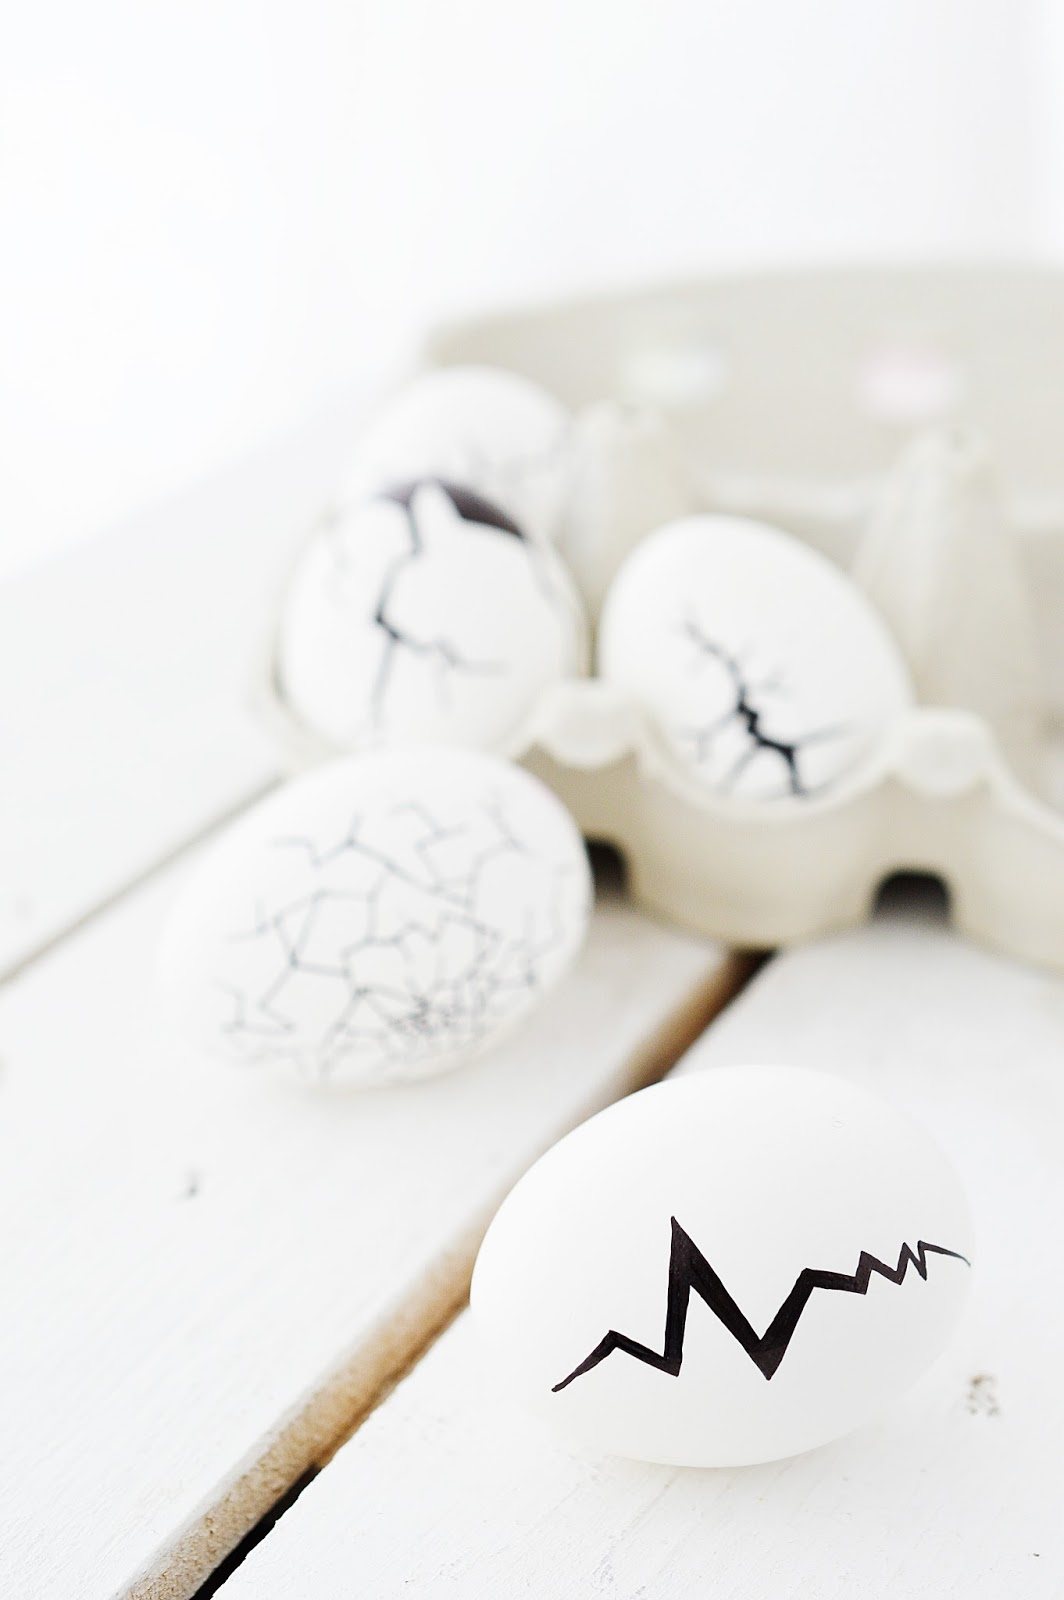 painted Easter eggs with cracks